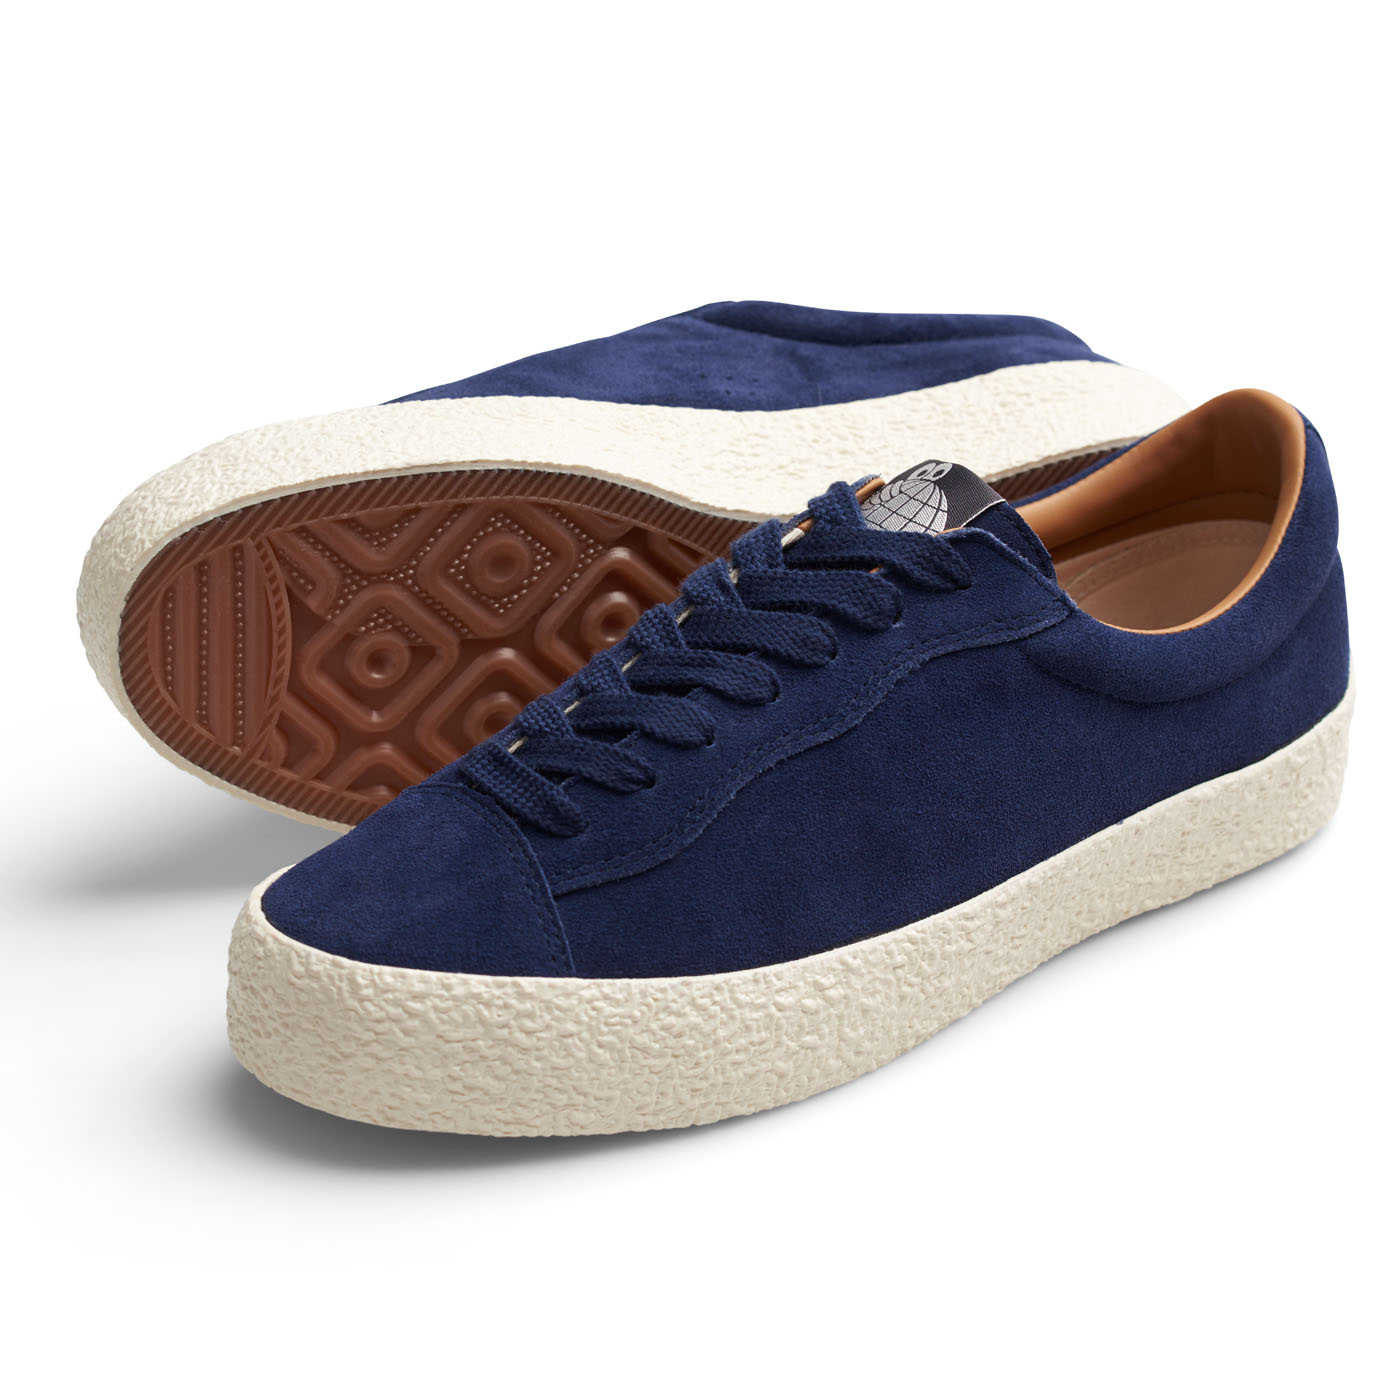 "画像1: LAST RESORT AB ""VM002 SUEDE LO"" - DEEP BLUE / WHITE (1)"